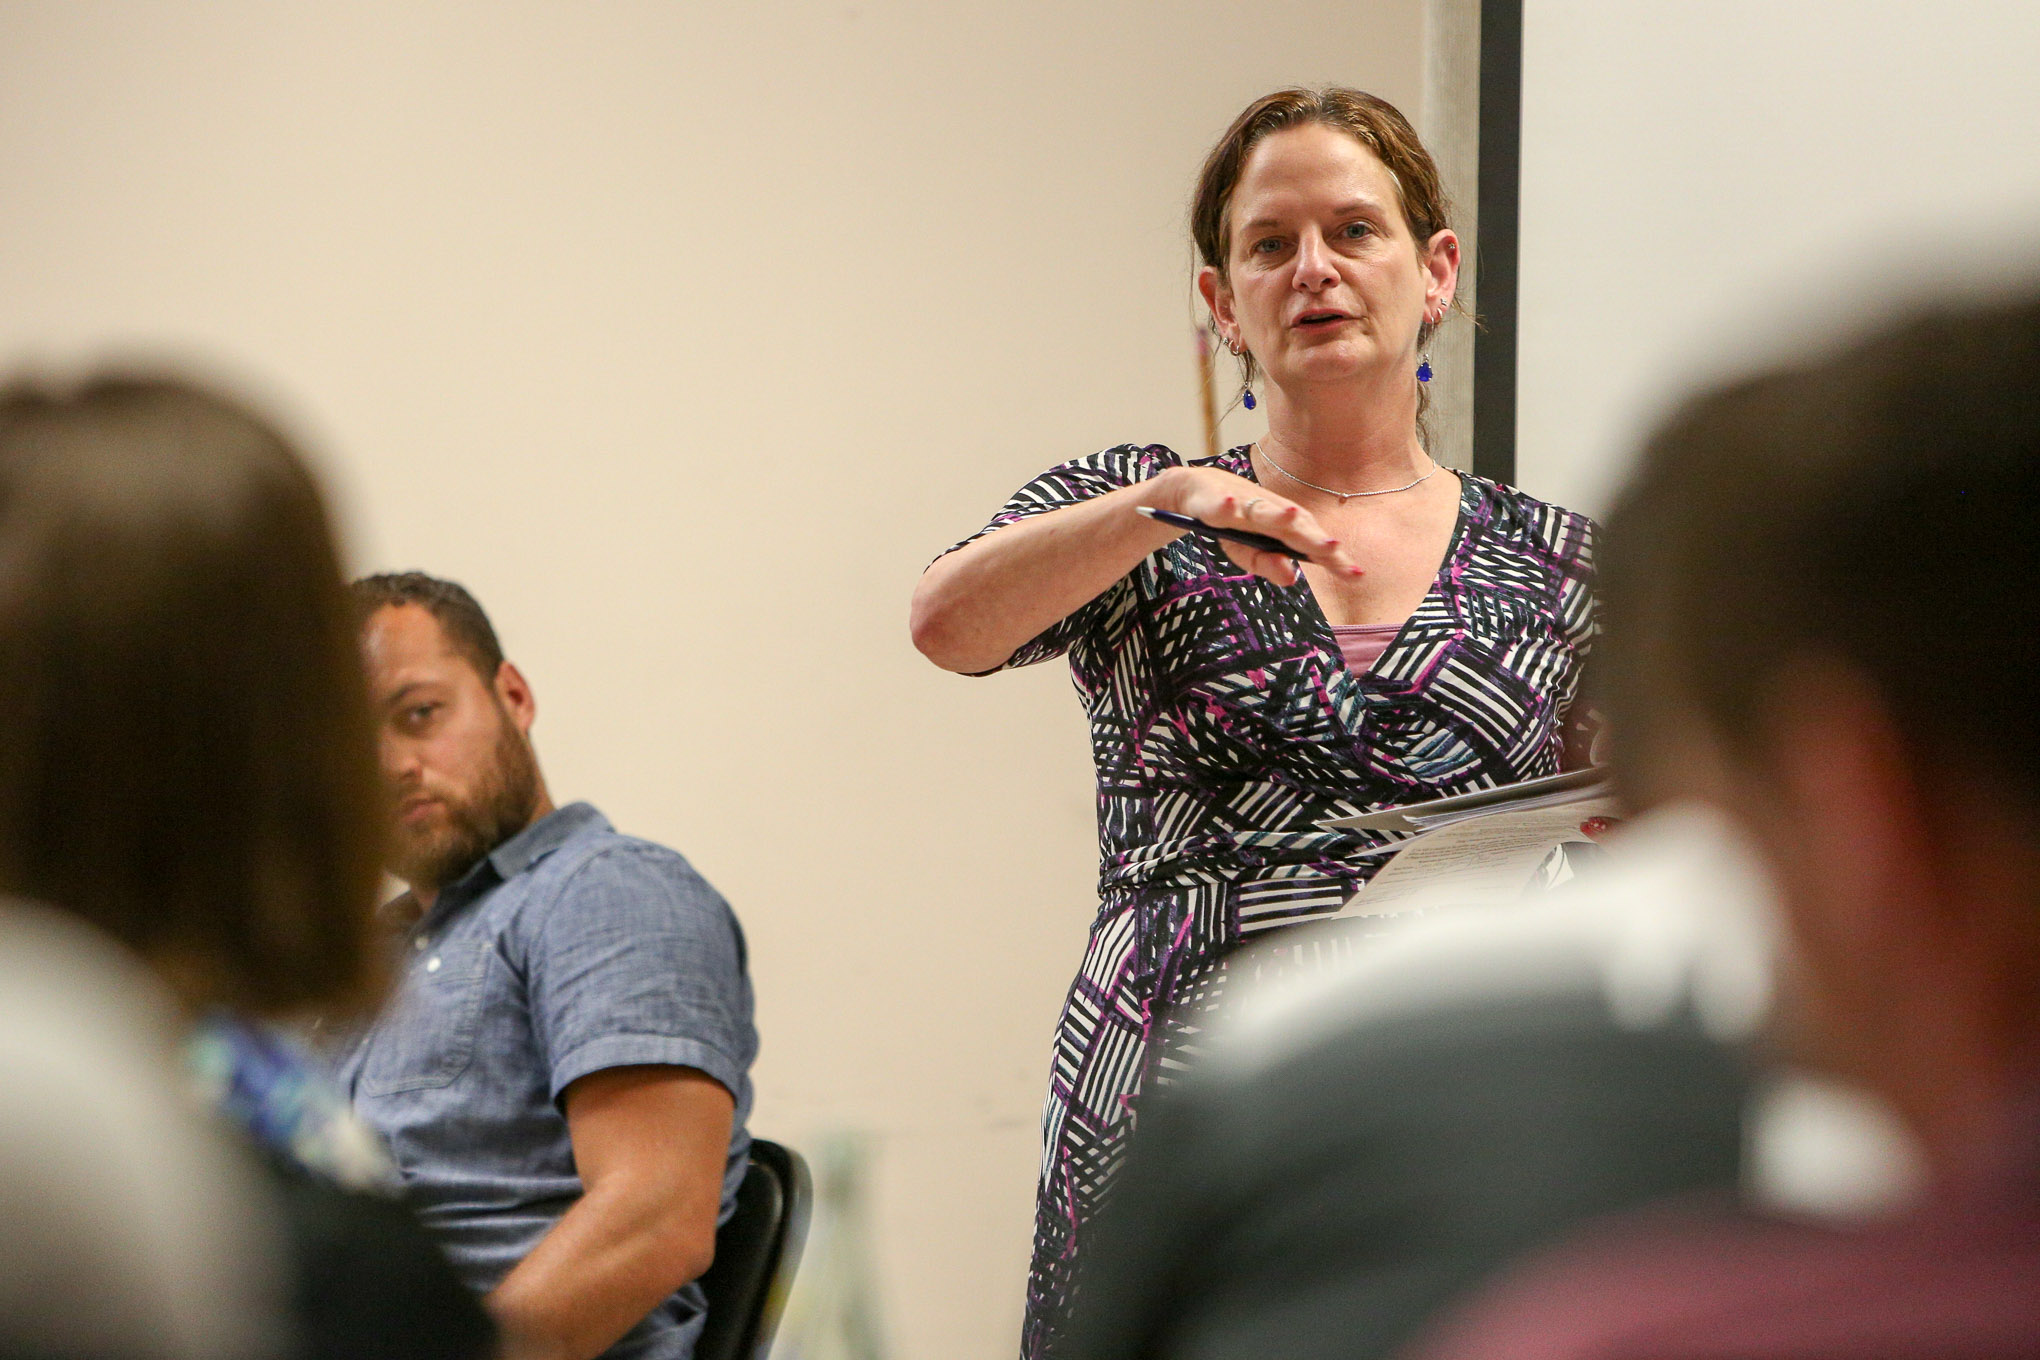 Lorena Havill told her fellow Dignowity Hill Neighborhood Association members to vote against her neighbor's request for a zoning change.